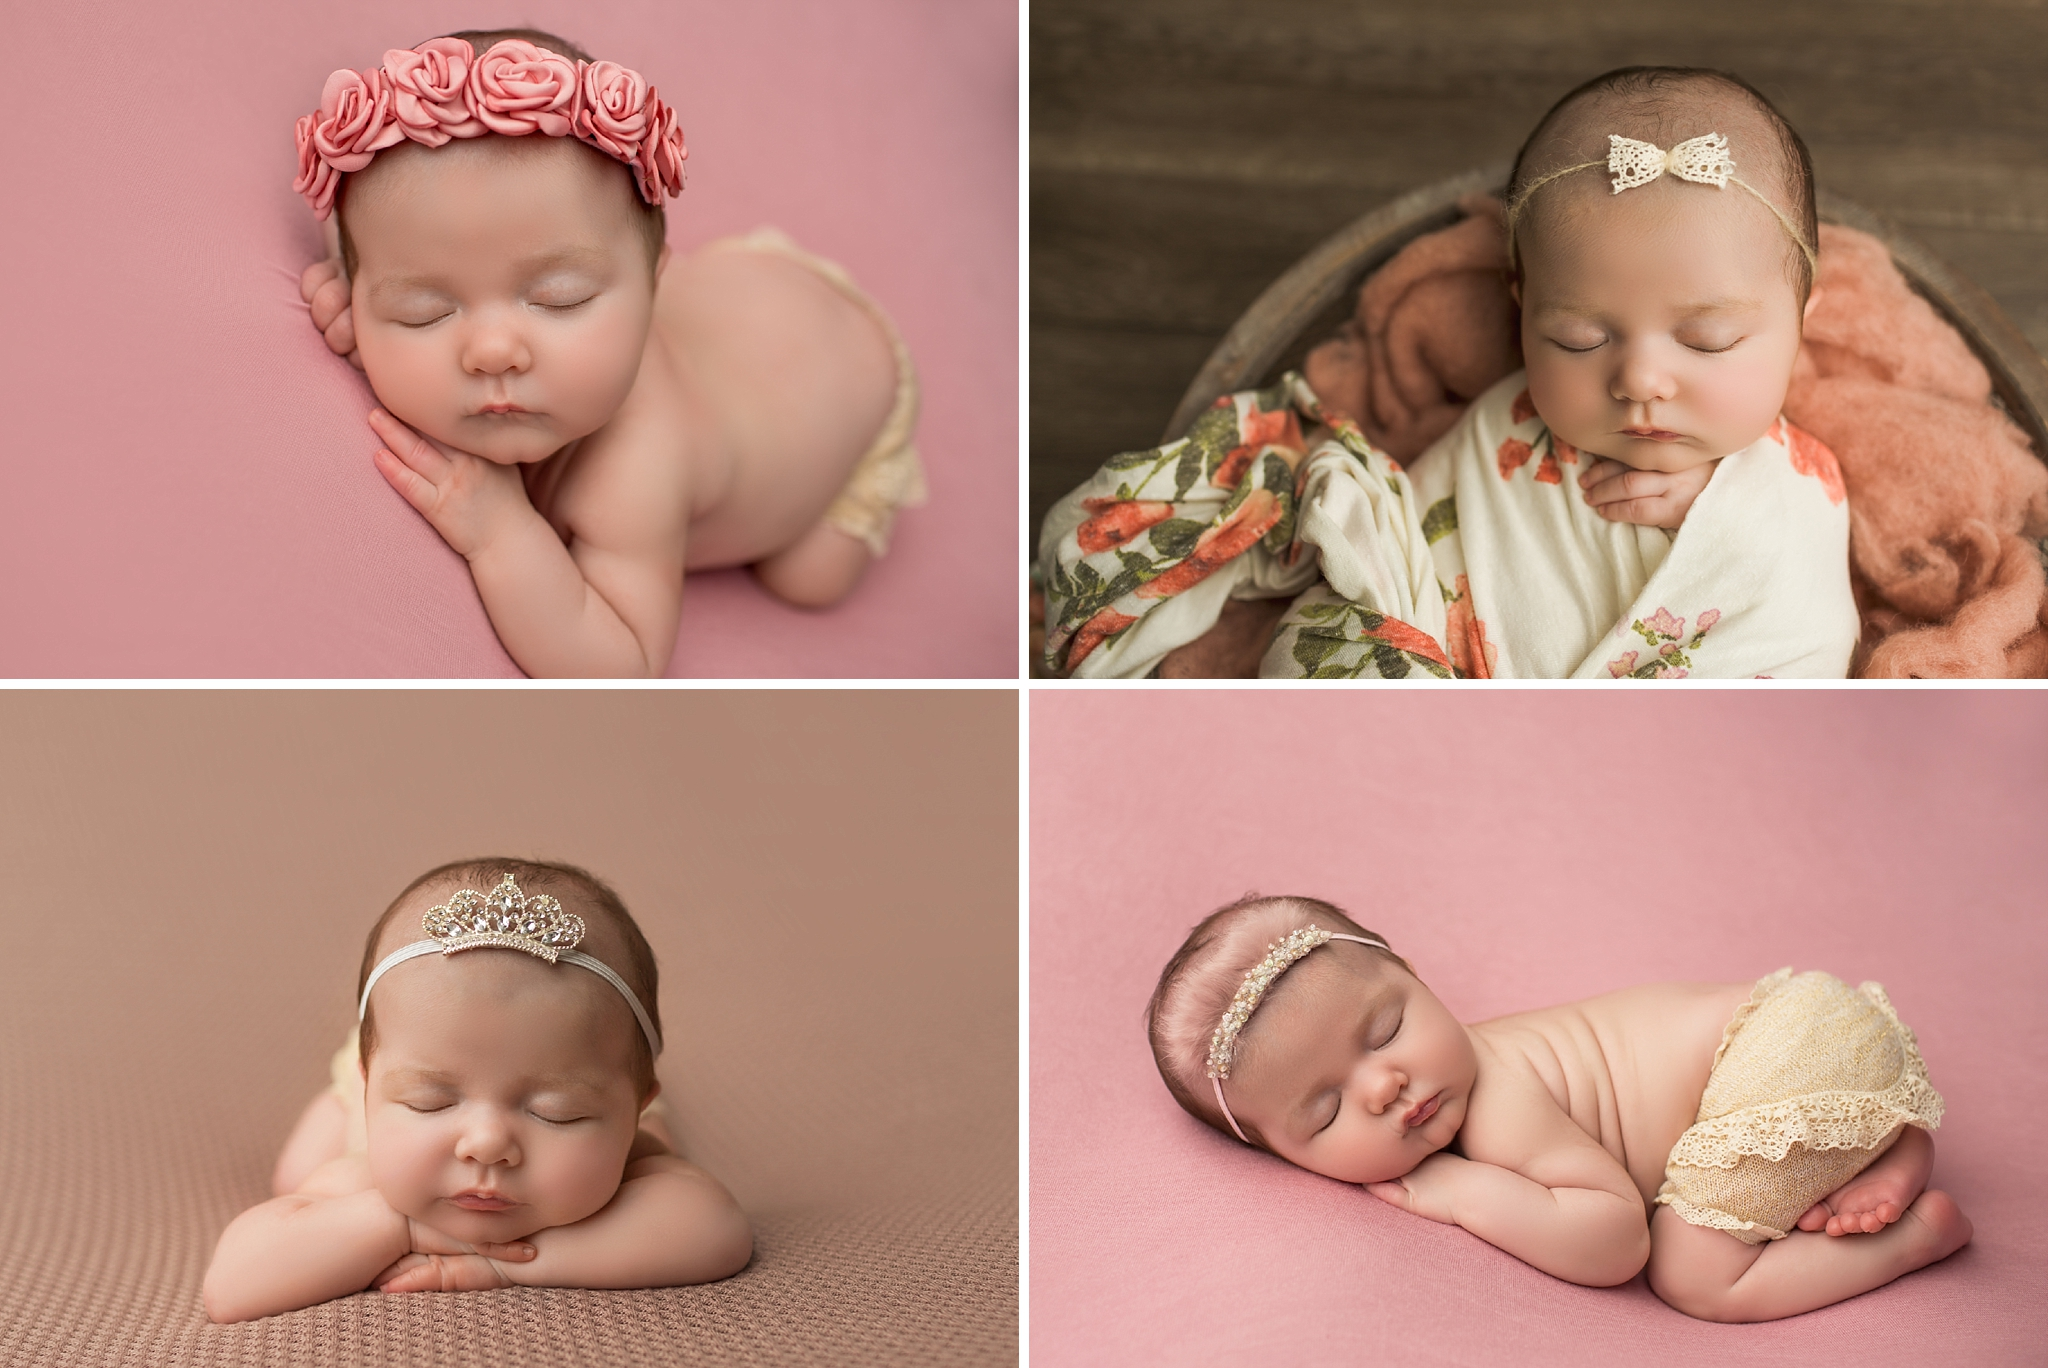 newborn baby photographed by CG Photography in Los Angeles